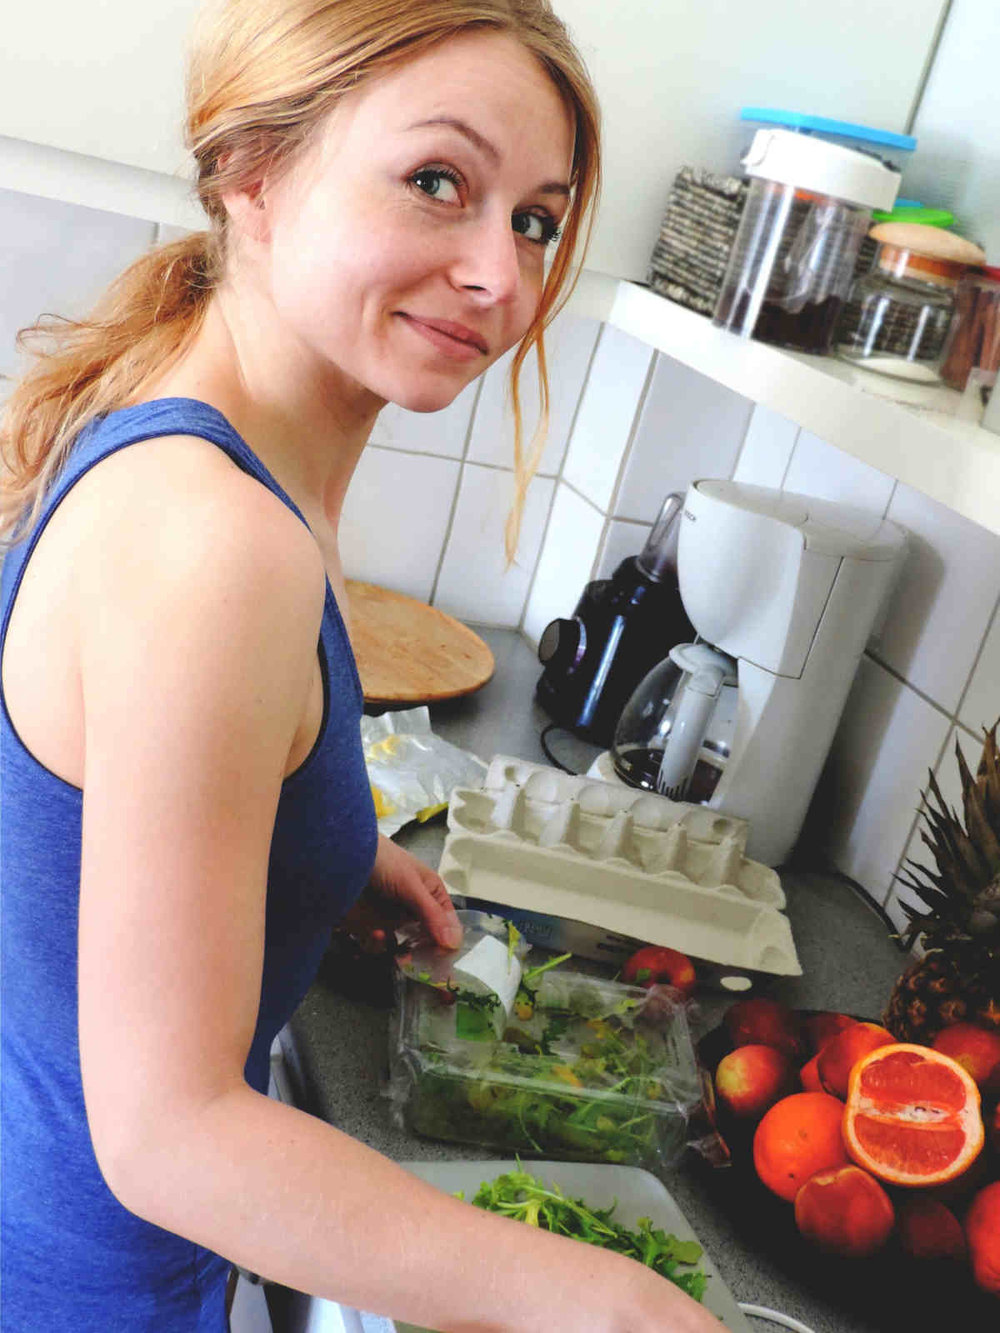 woman preparing food in kitchen.jpg